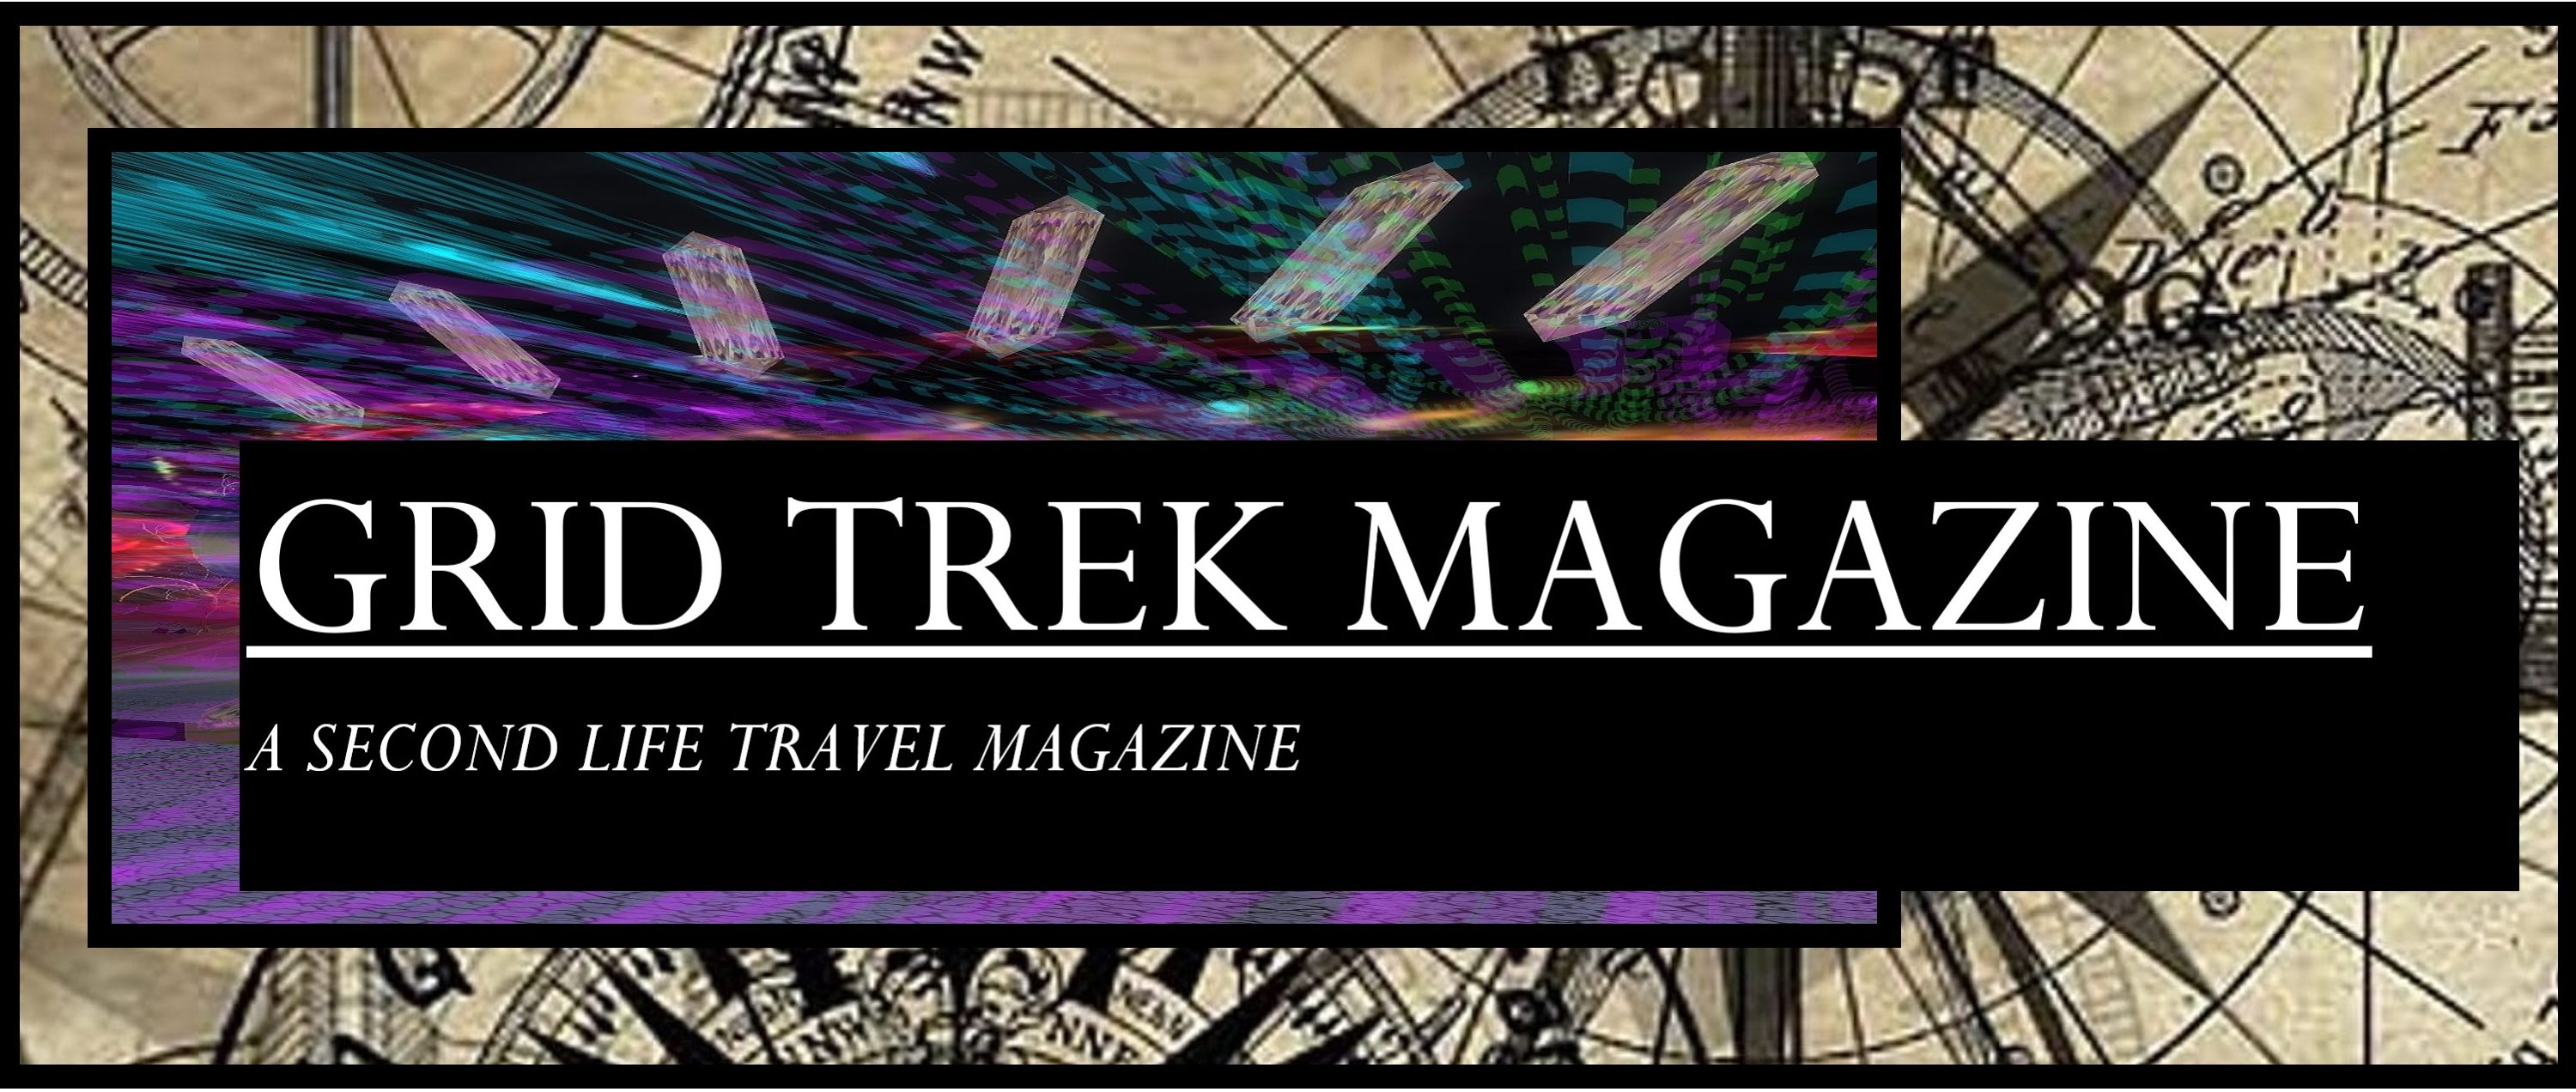 Grid Trek Magazine